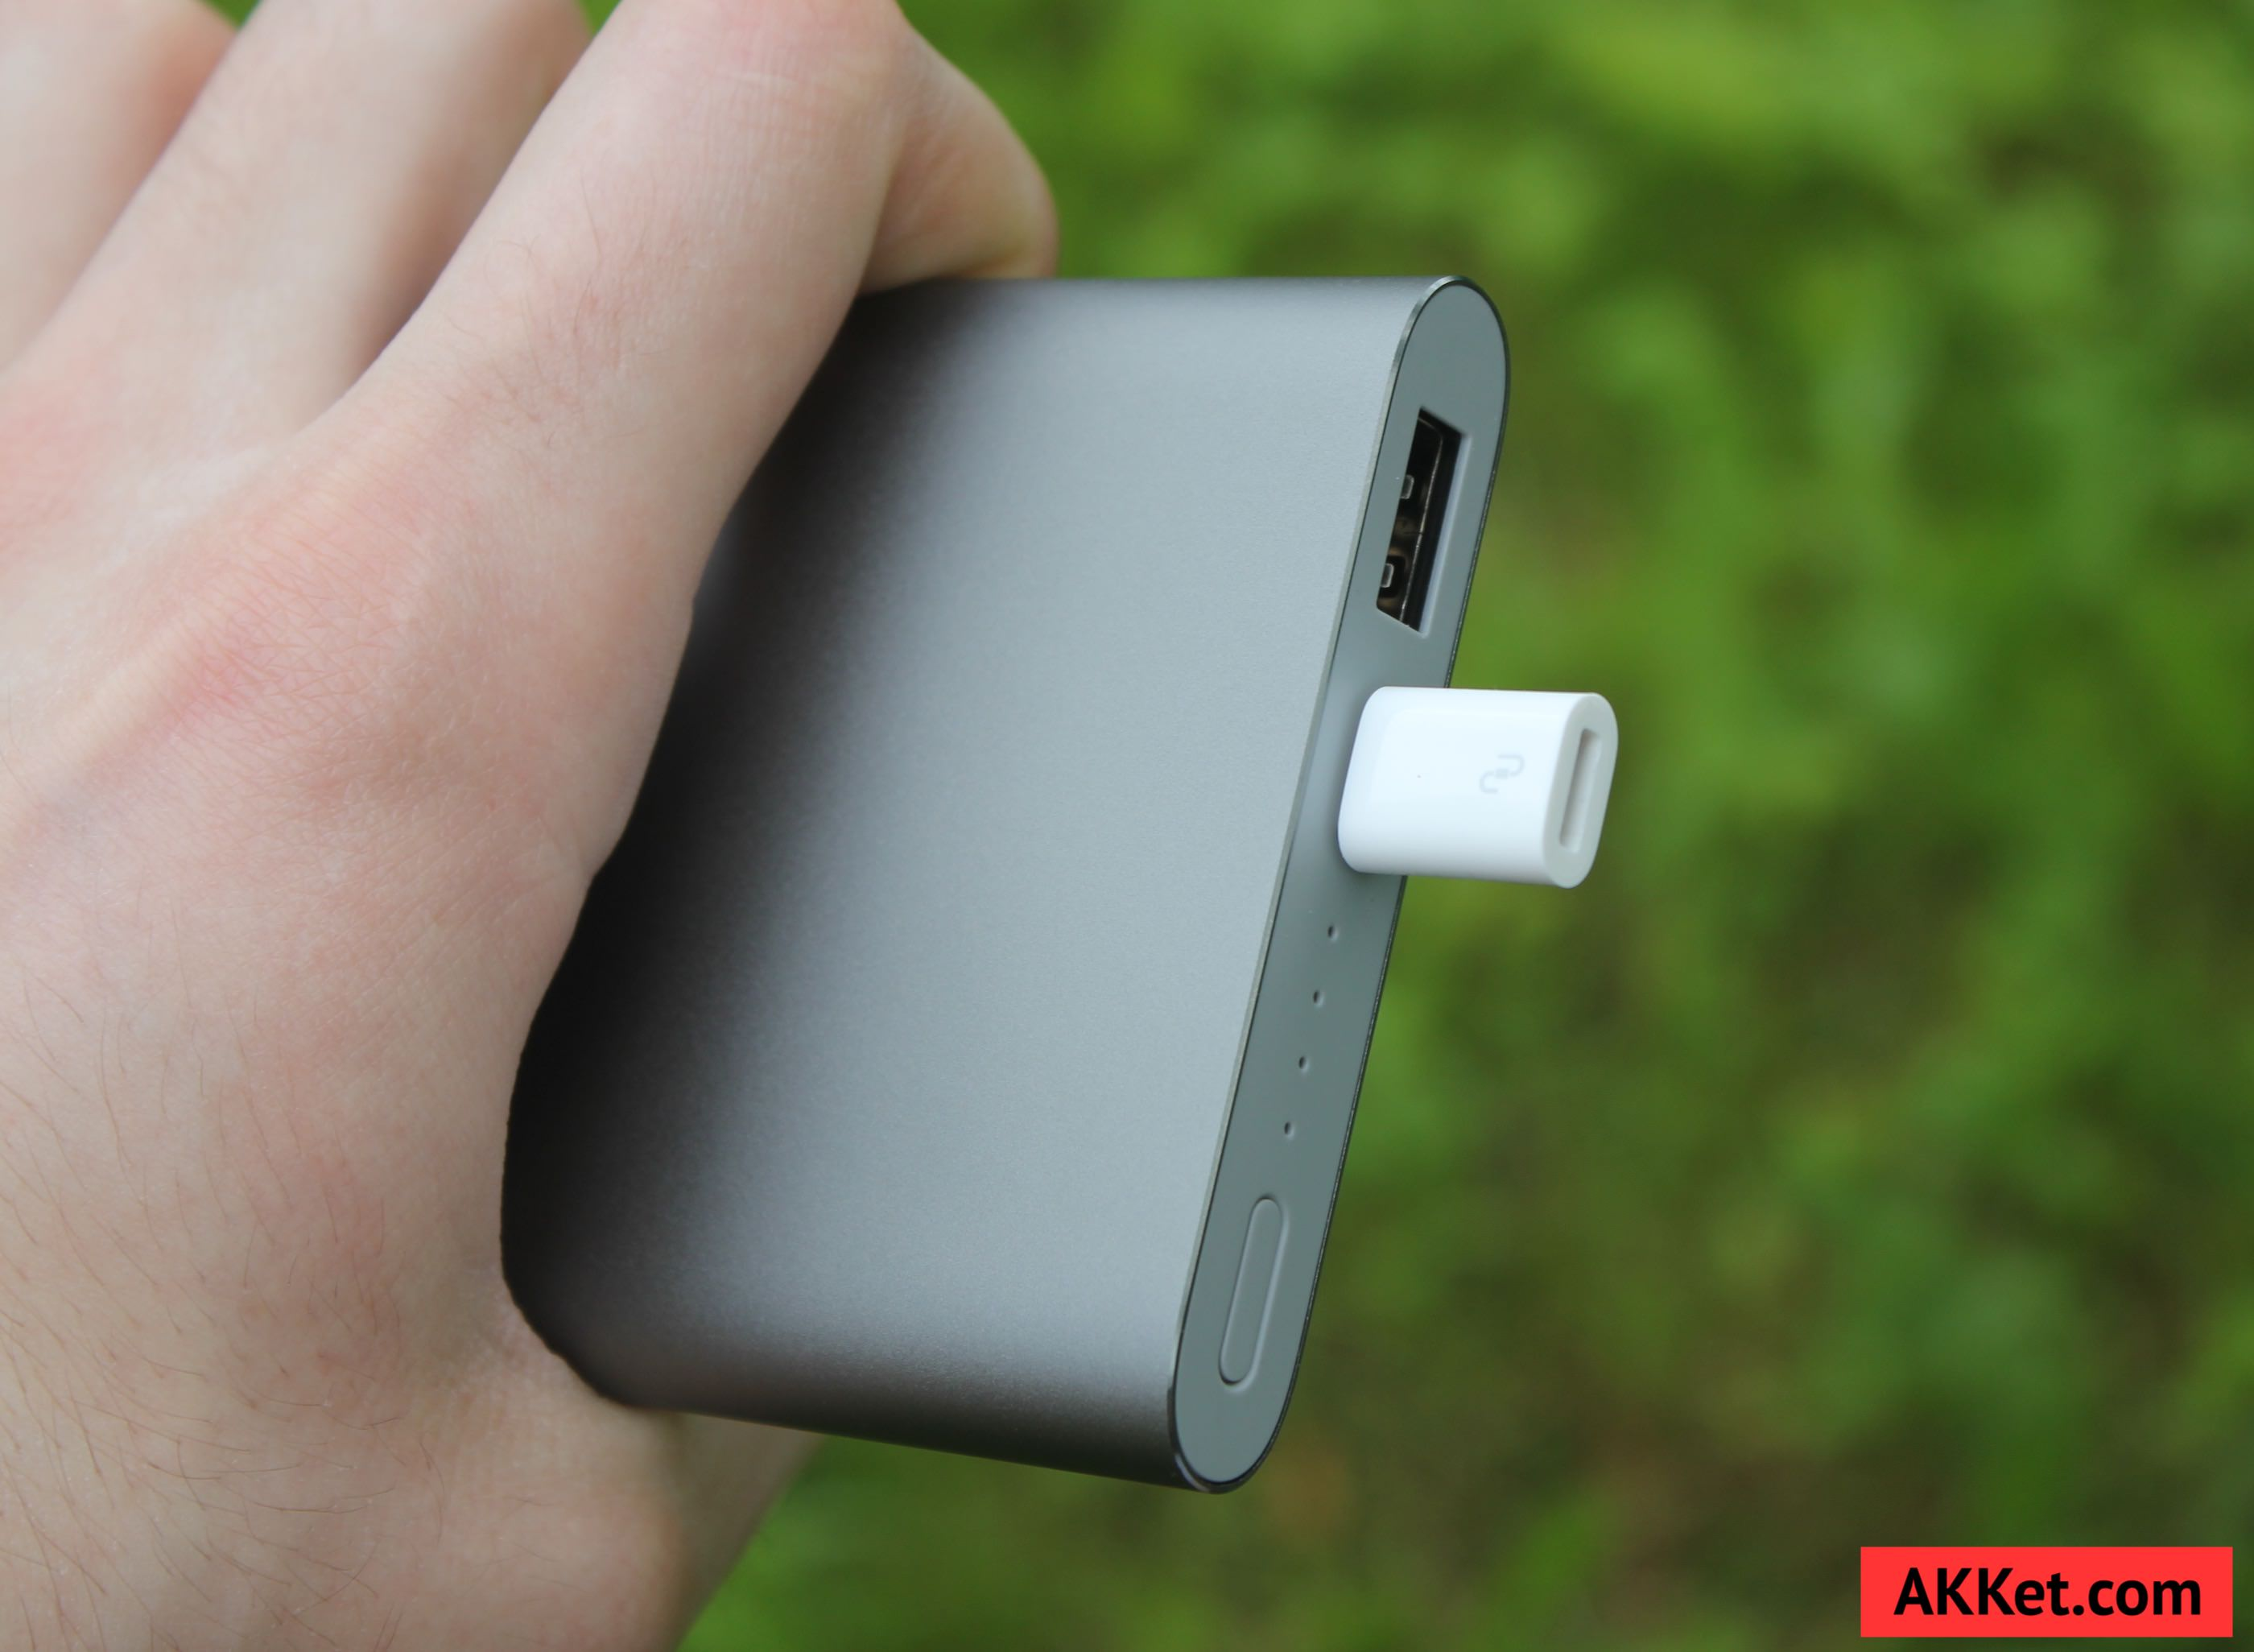 Xiaomi Mi Power Bank Pro 10000 мАч review photo 11